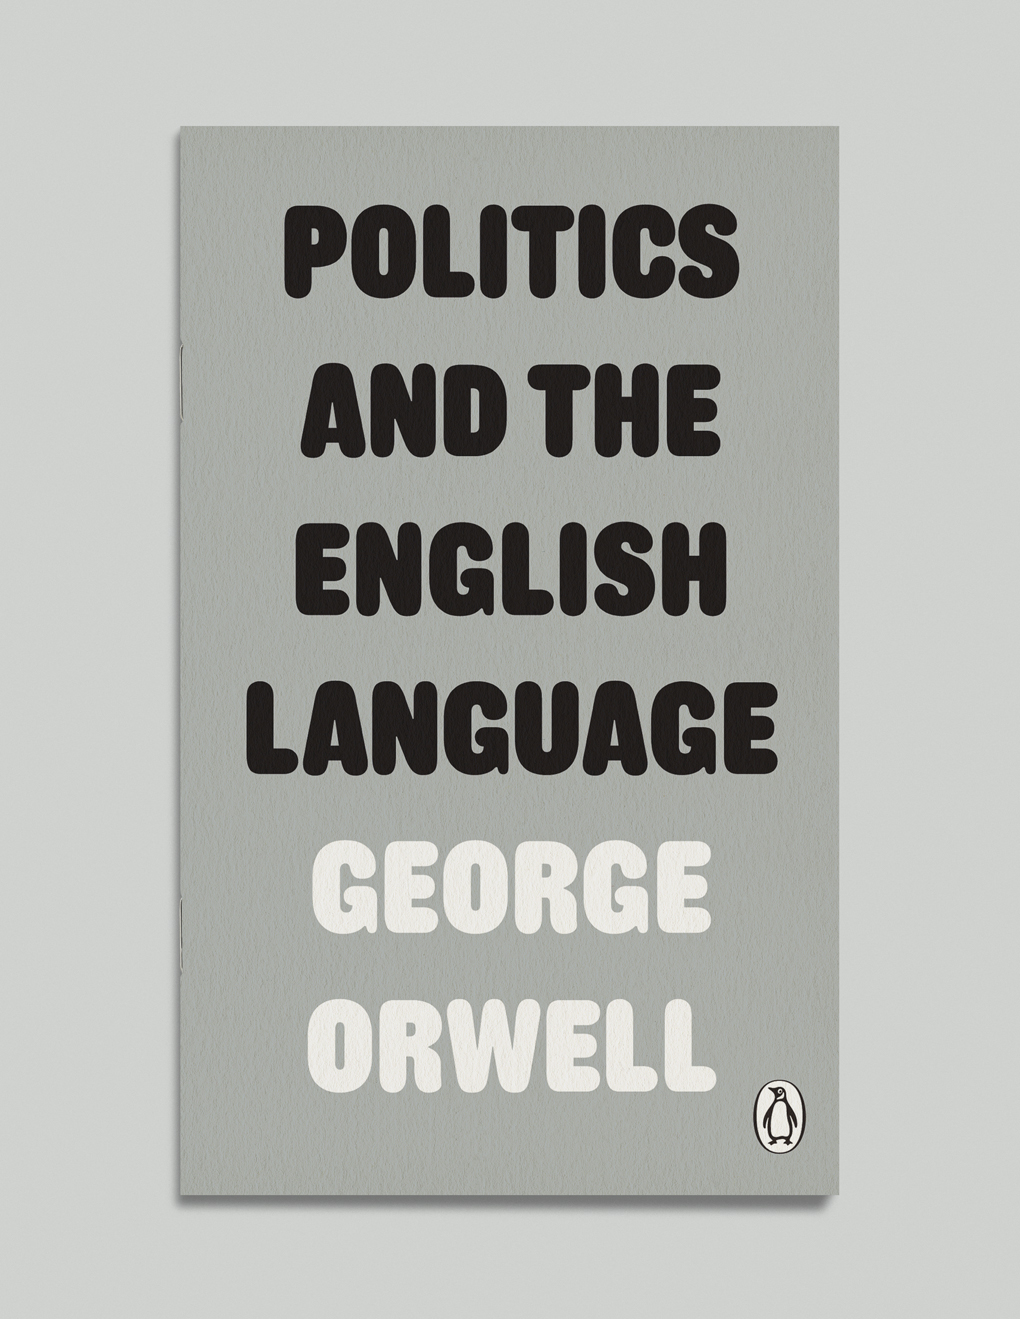 orwell politics english language thesis Orwell politics and the english language thesis, apr 17, 2016 identify orwells thesis and then write it in your own words orwells thesis is that political language is watering down the english language, and when thoughts water down language, language then further recedes the quality and depth of your thoughts, causing an exponential.